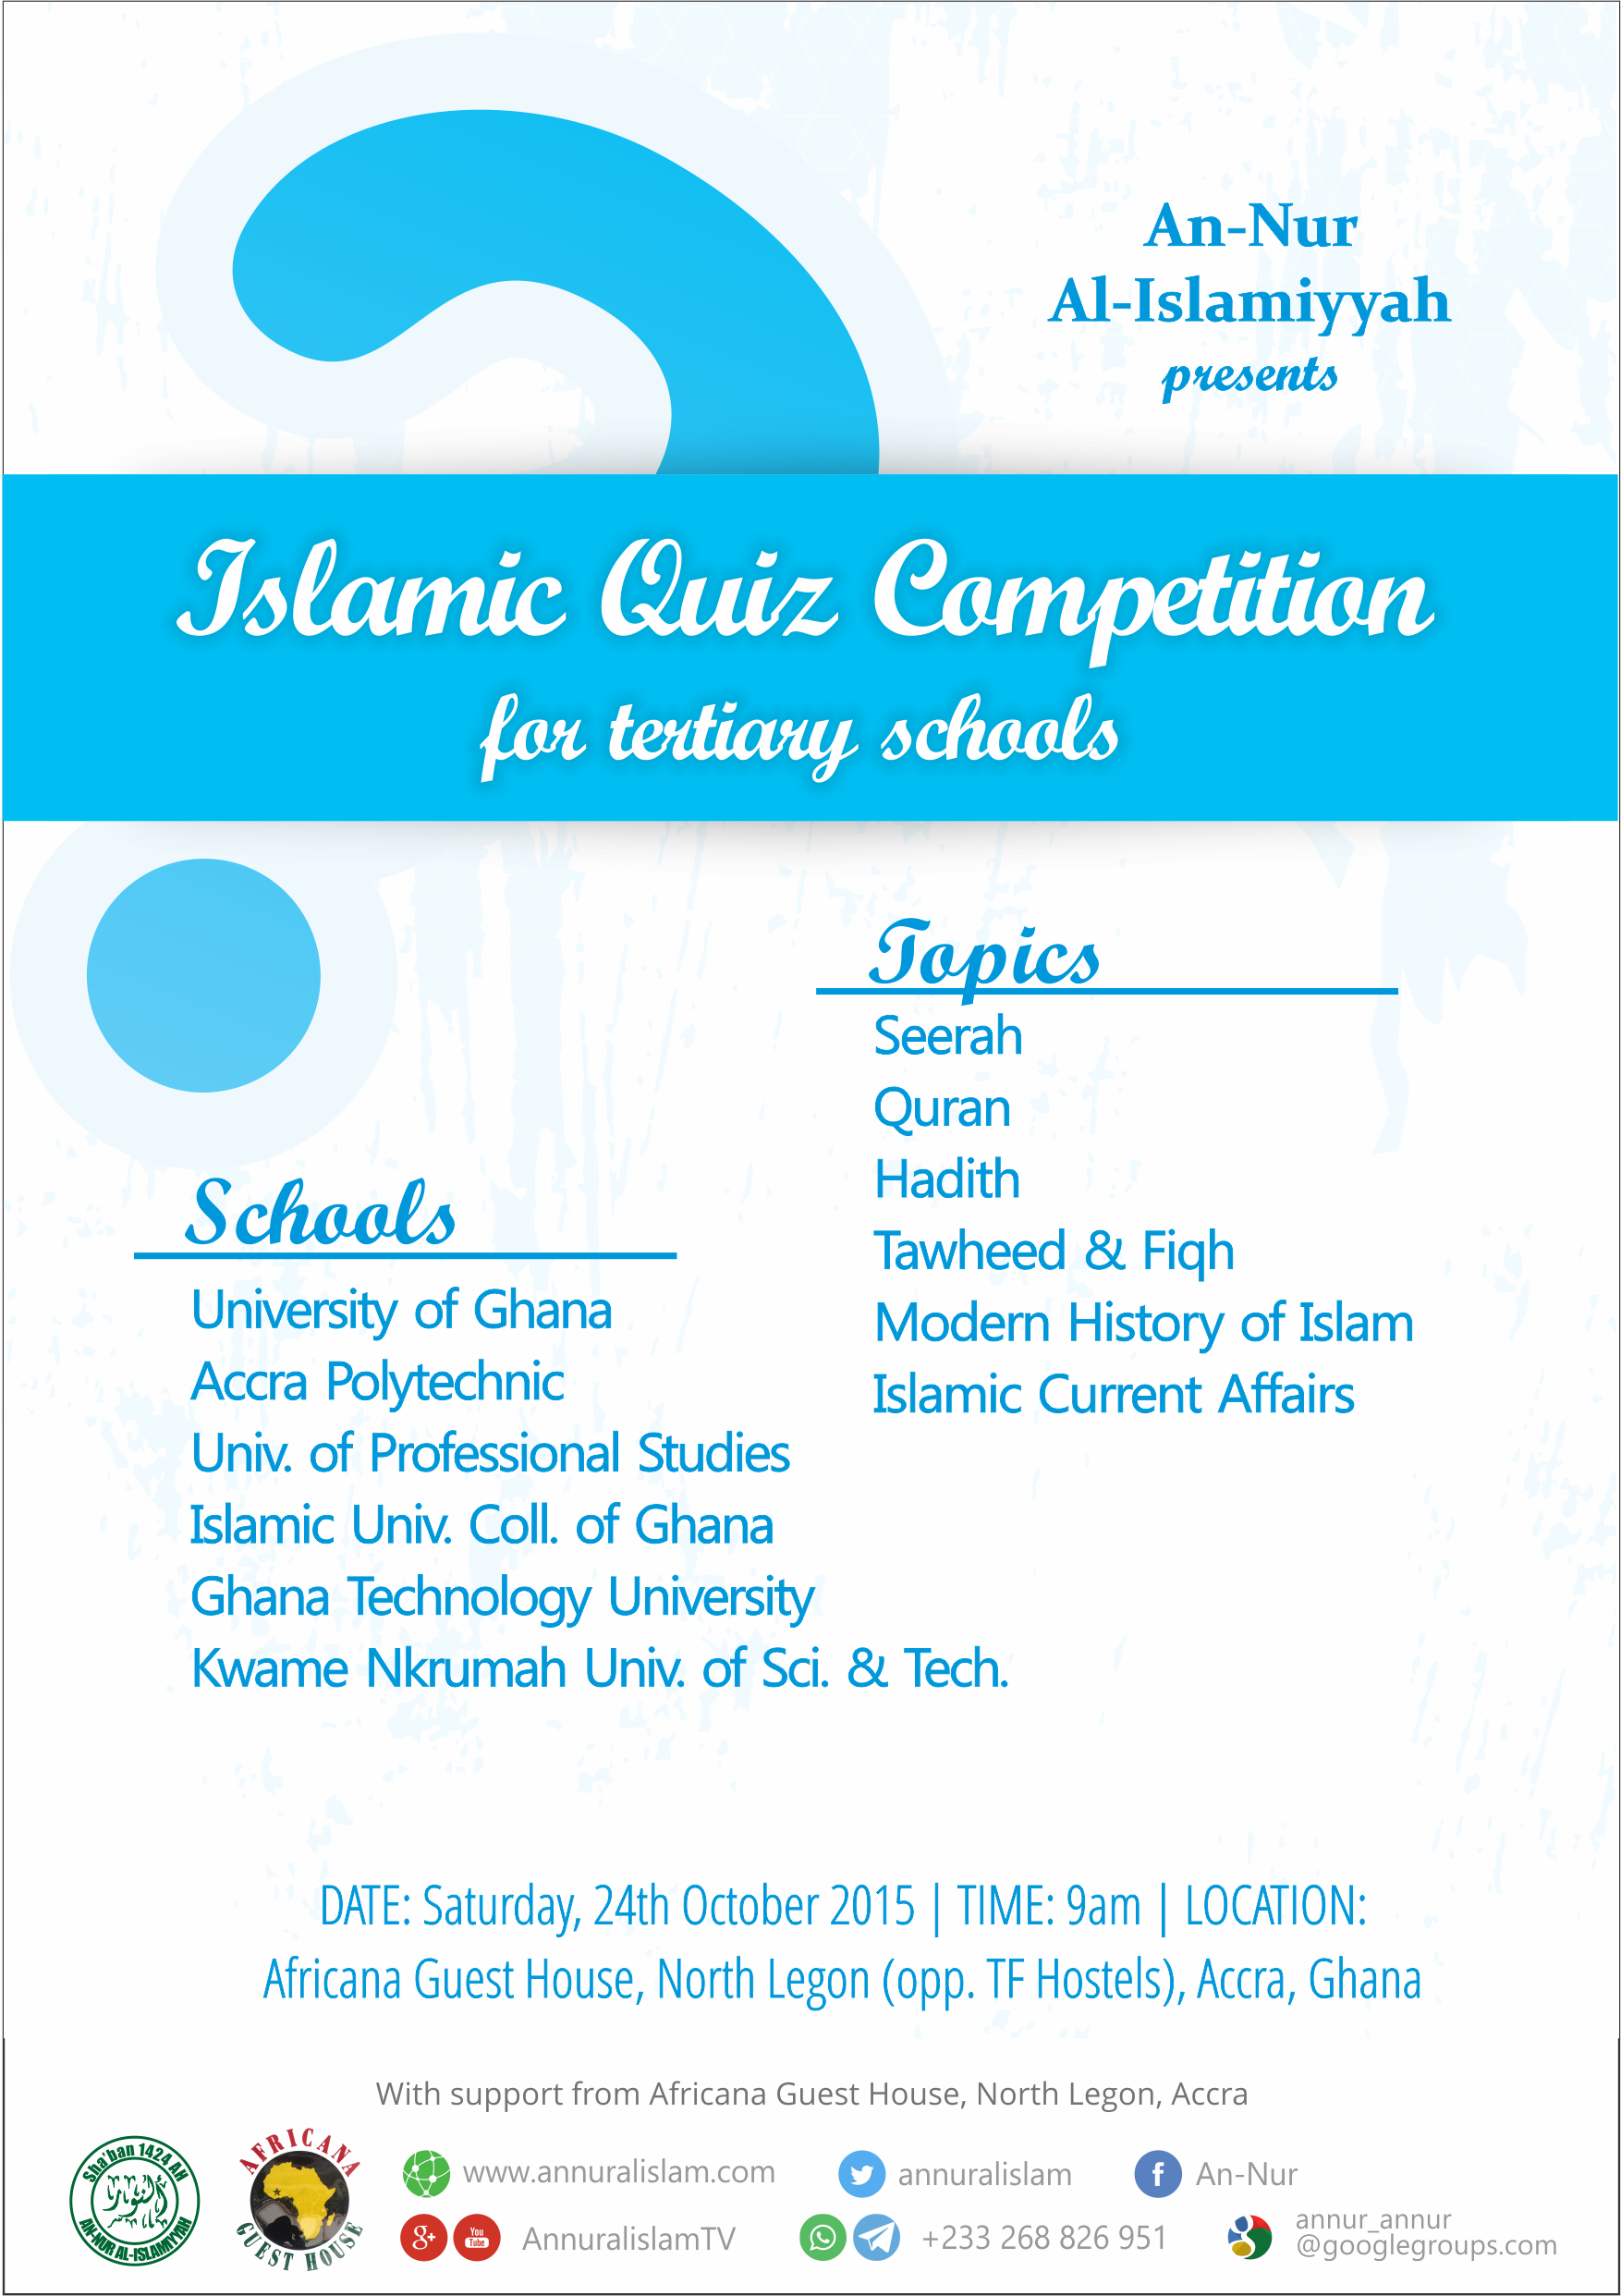 Islamic quiz for tertiary schools